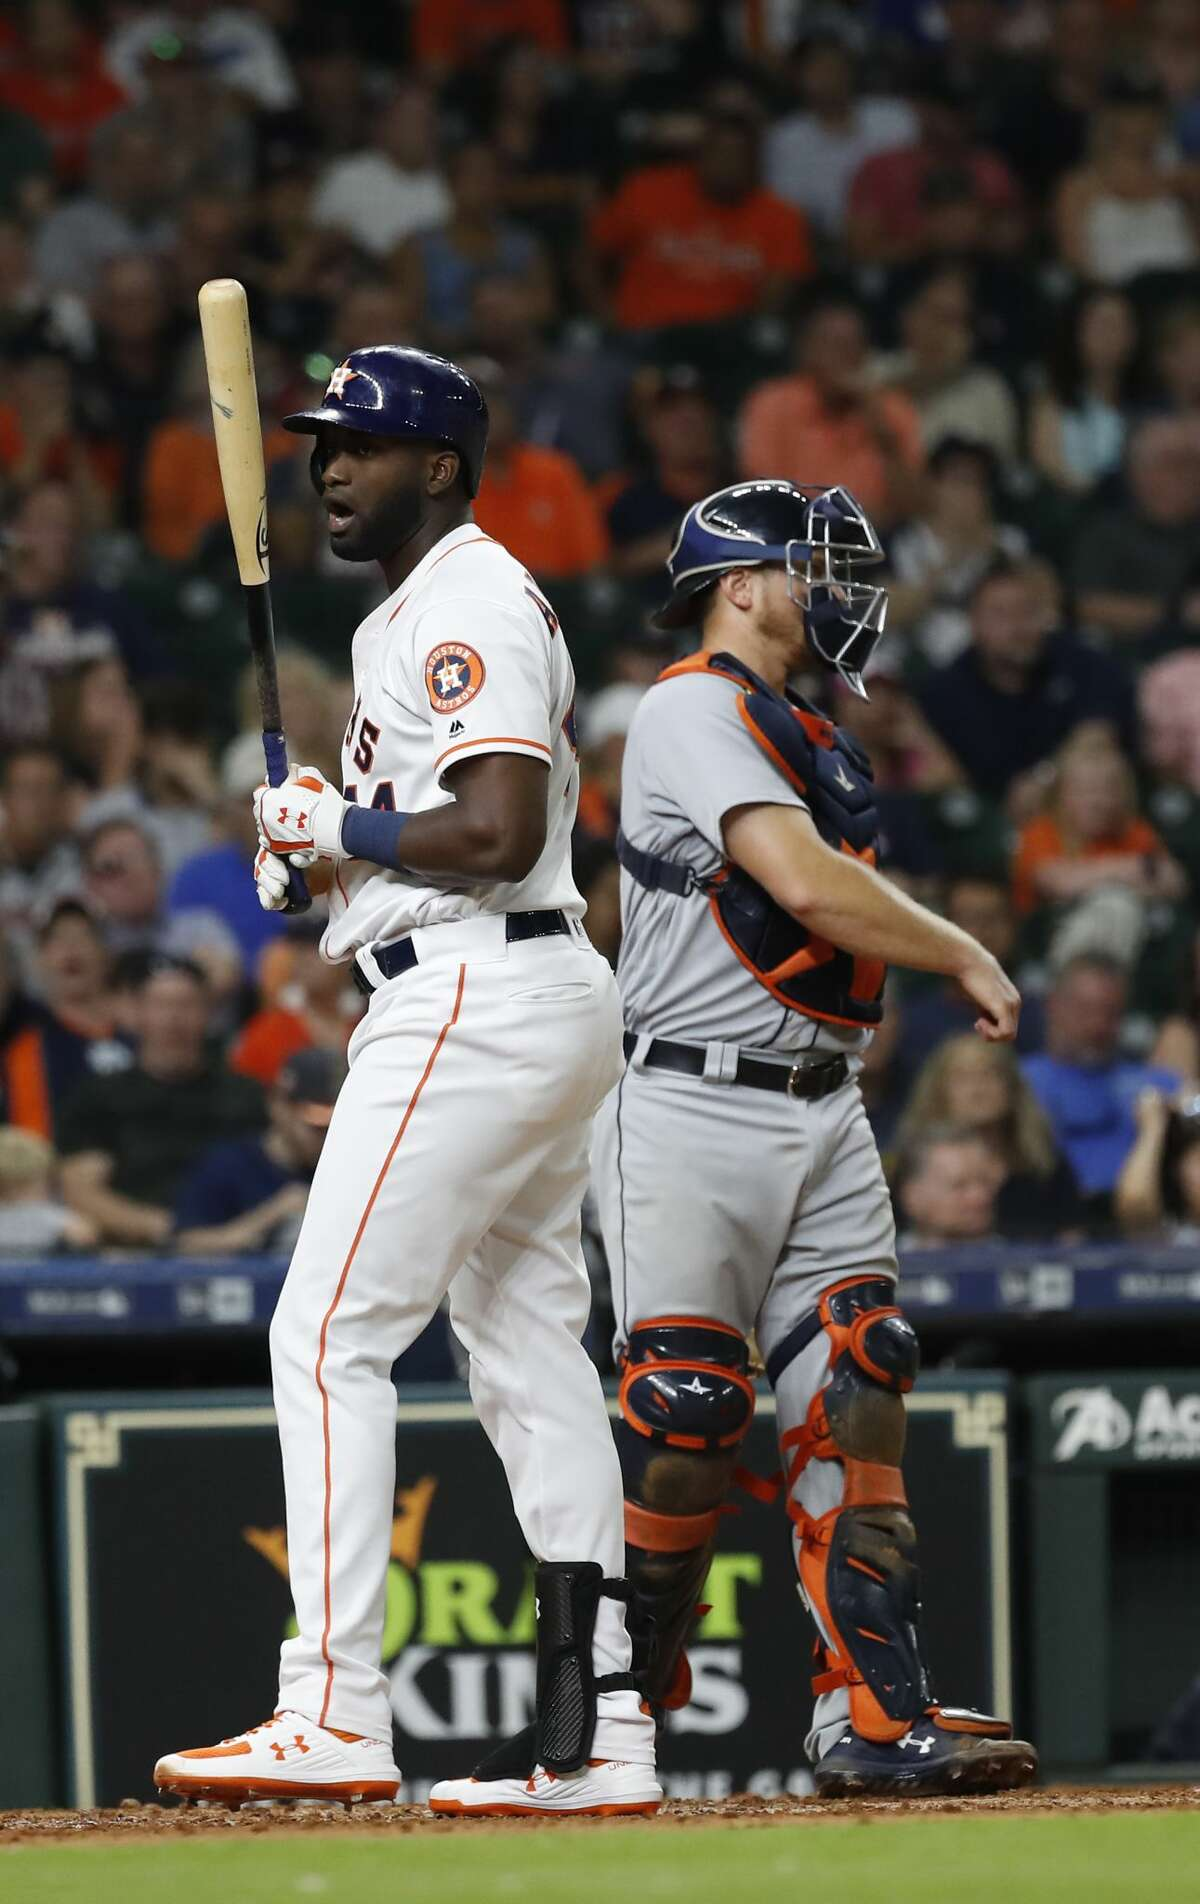 Houston Astros designated hitter Yordan Alvarez (44) reacts after striking out during the ninth inning of an MLB game at Minute Maid Park, Wednesday, August 21, 2019.